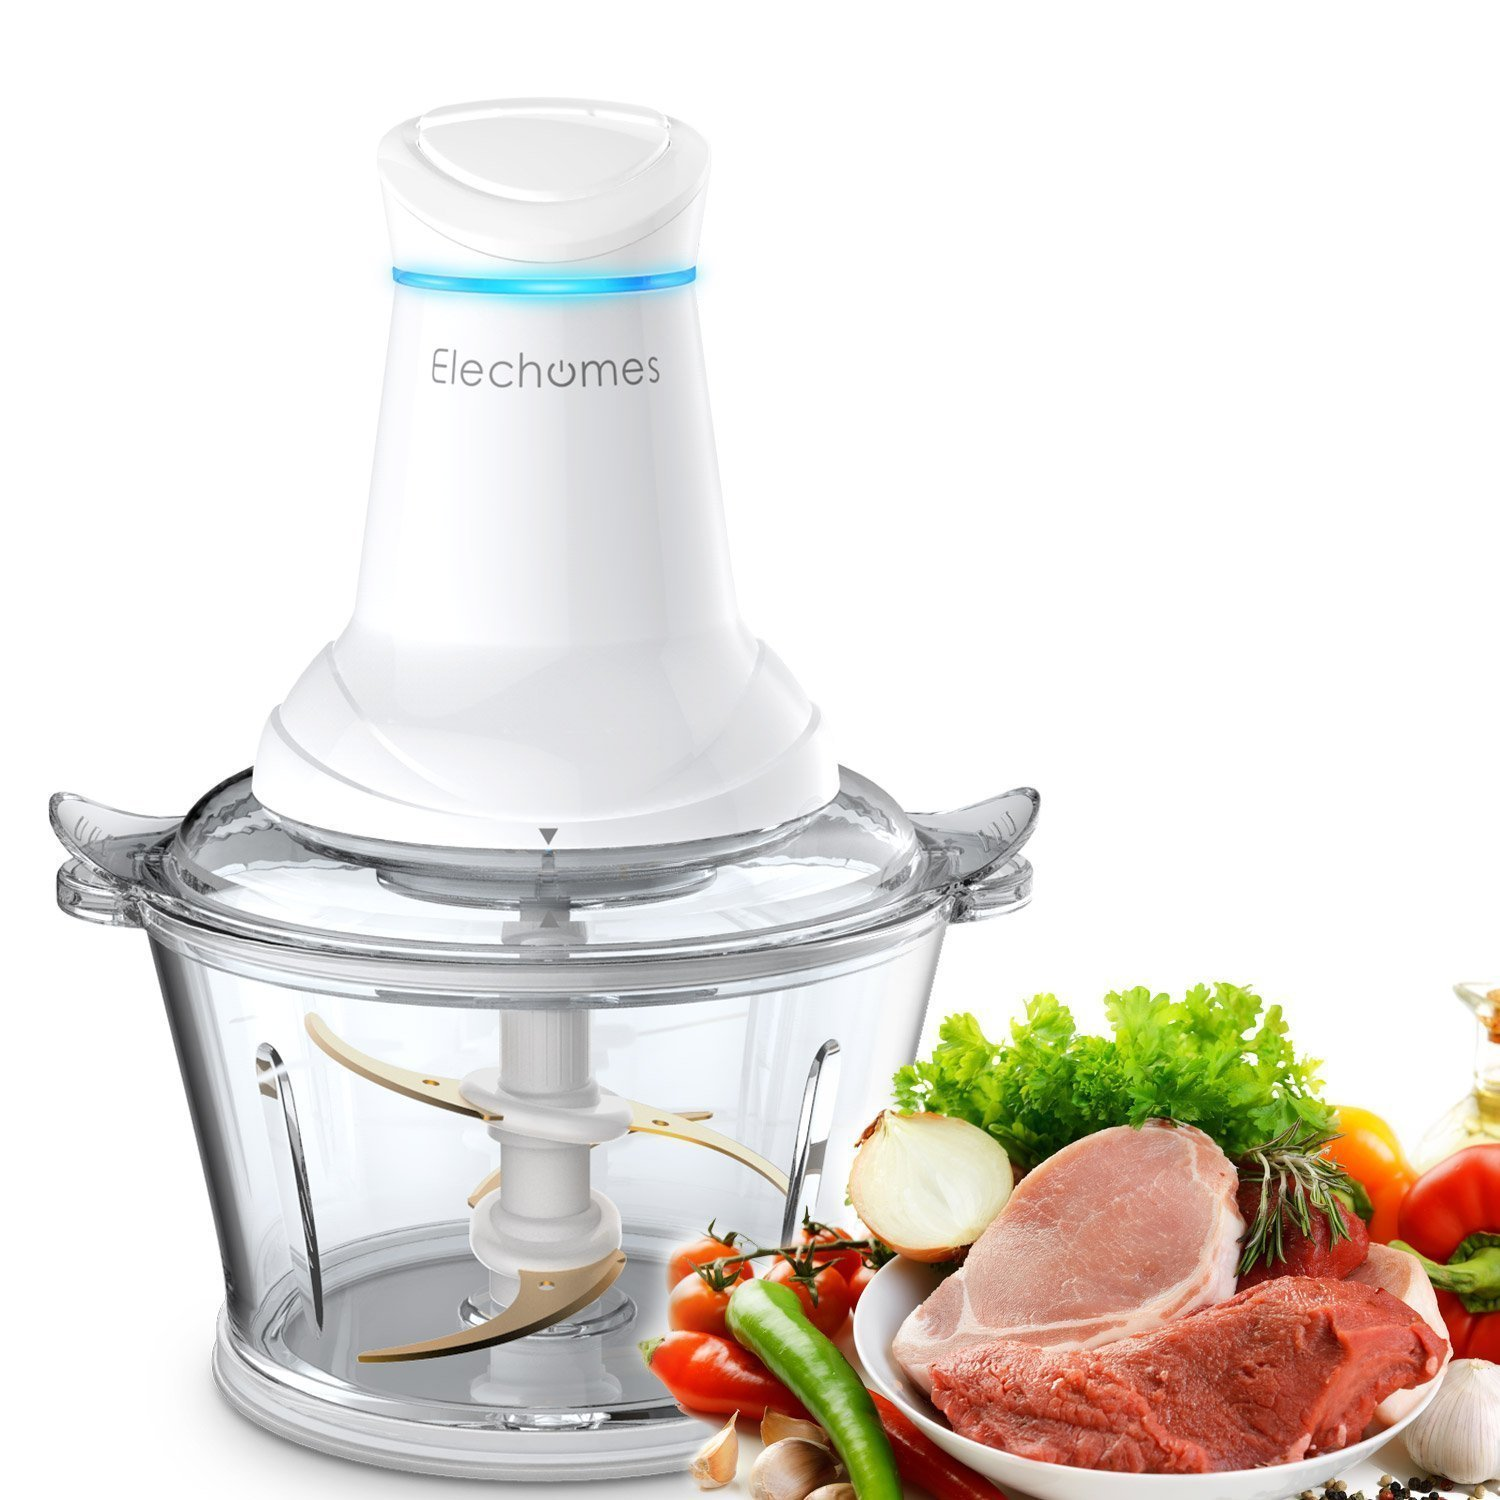 Save 50% on Elechomes Food Pro...